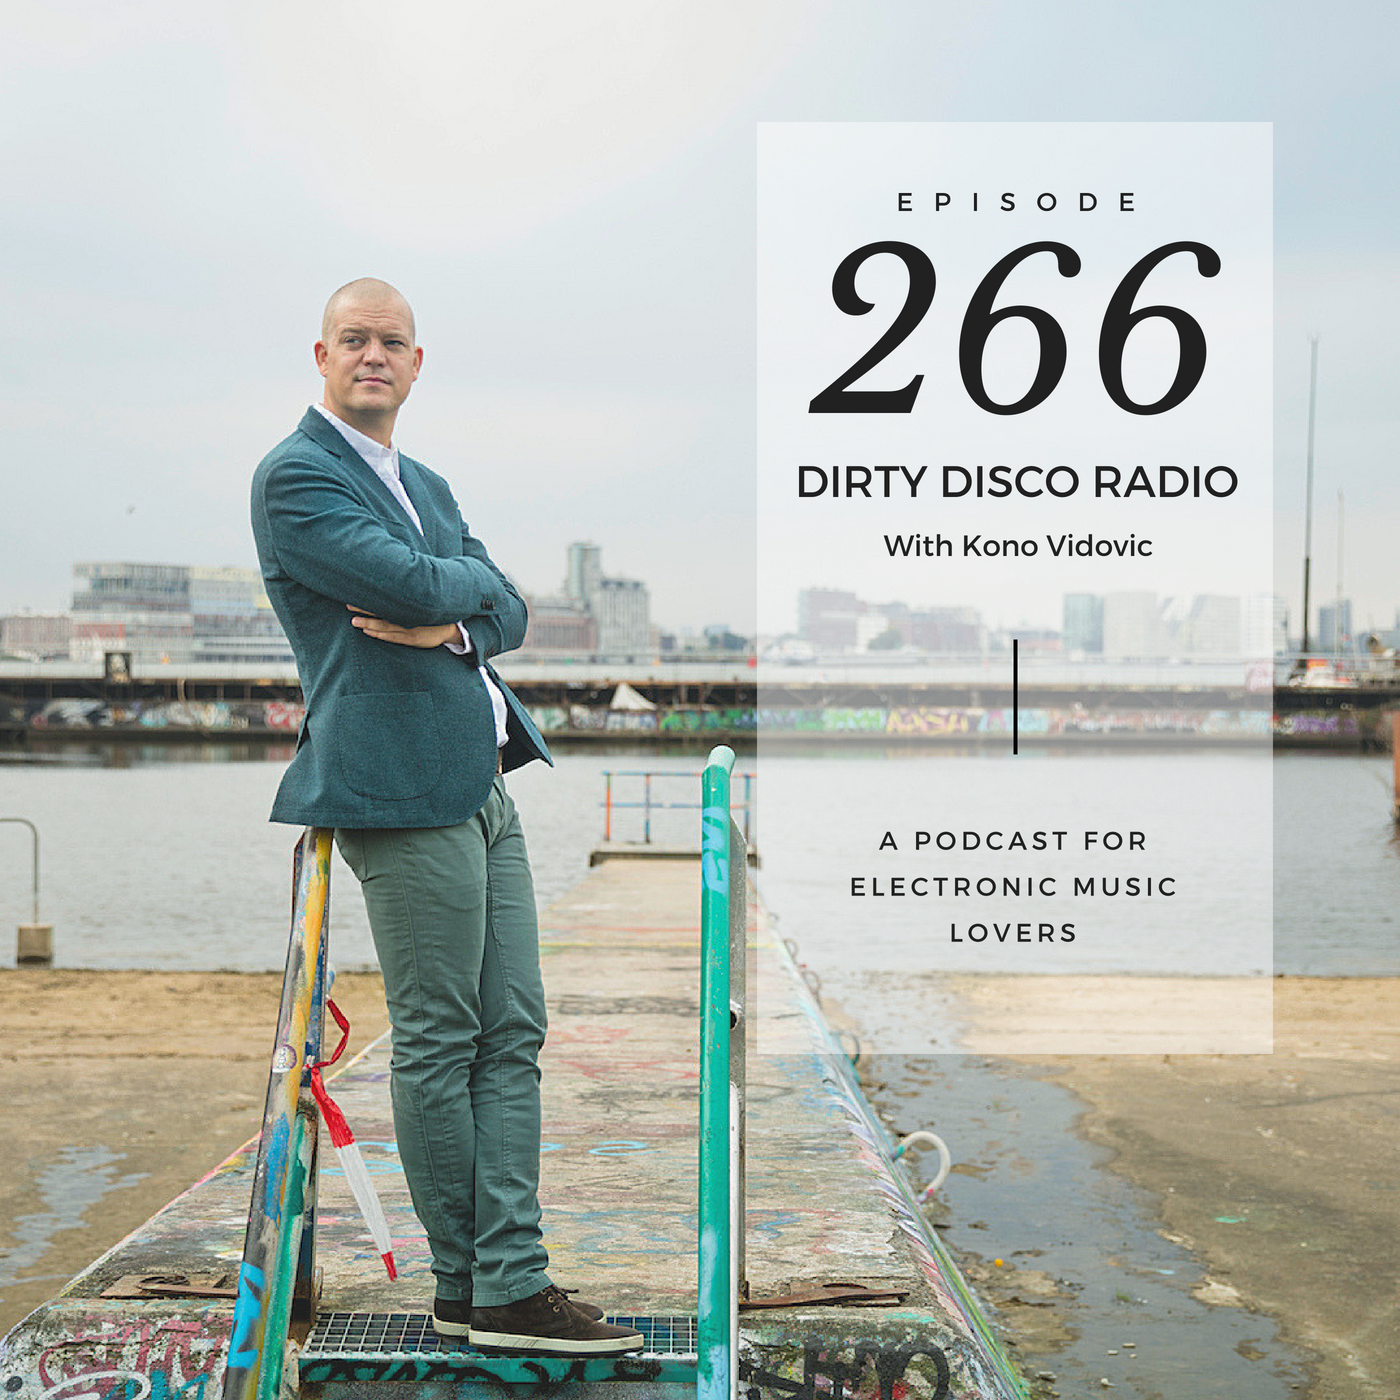 Deep Disco House Yourself - Dirty Disco Radio 266 With Kono Vidovic